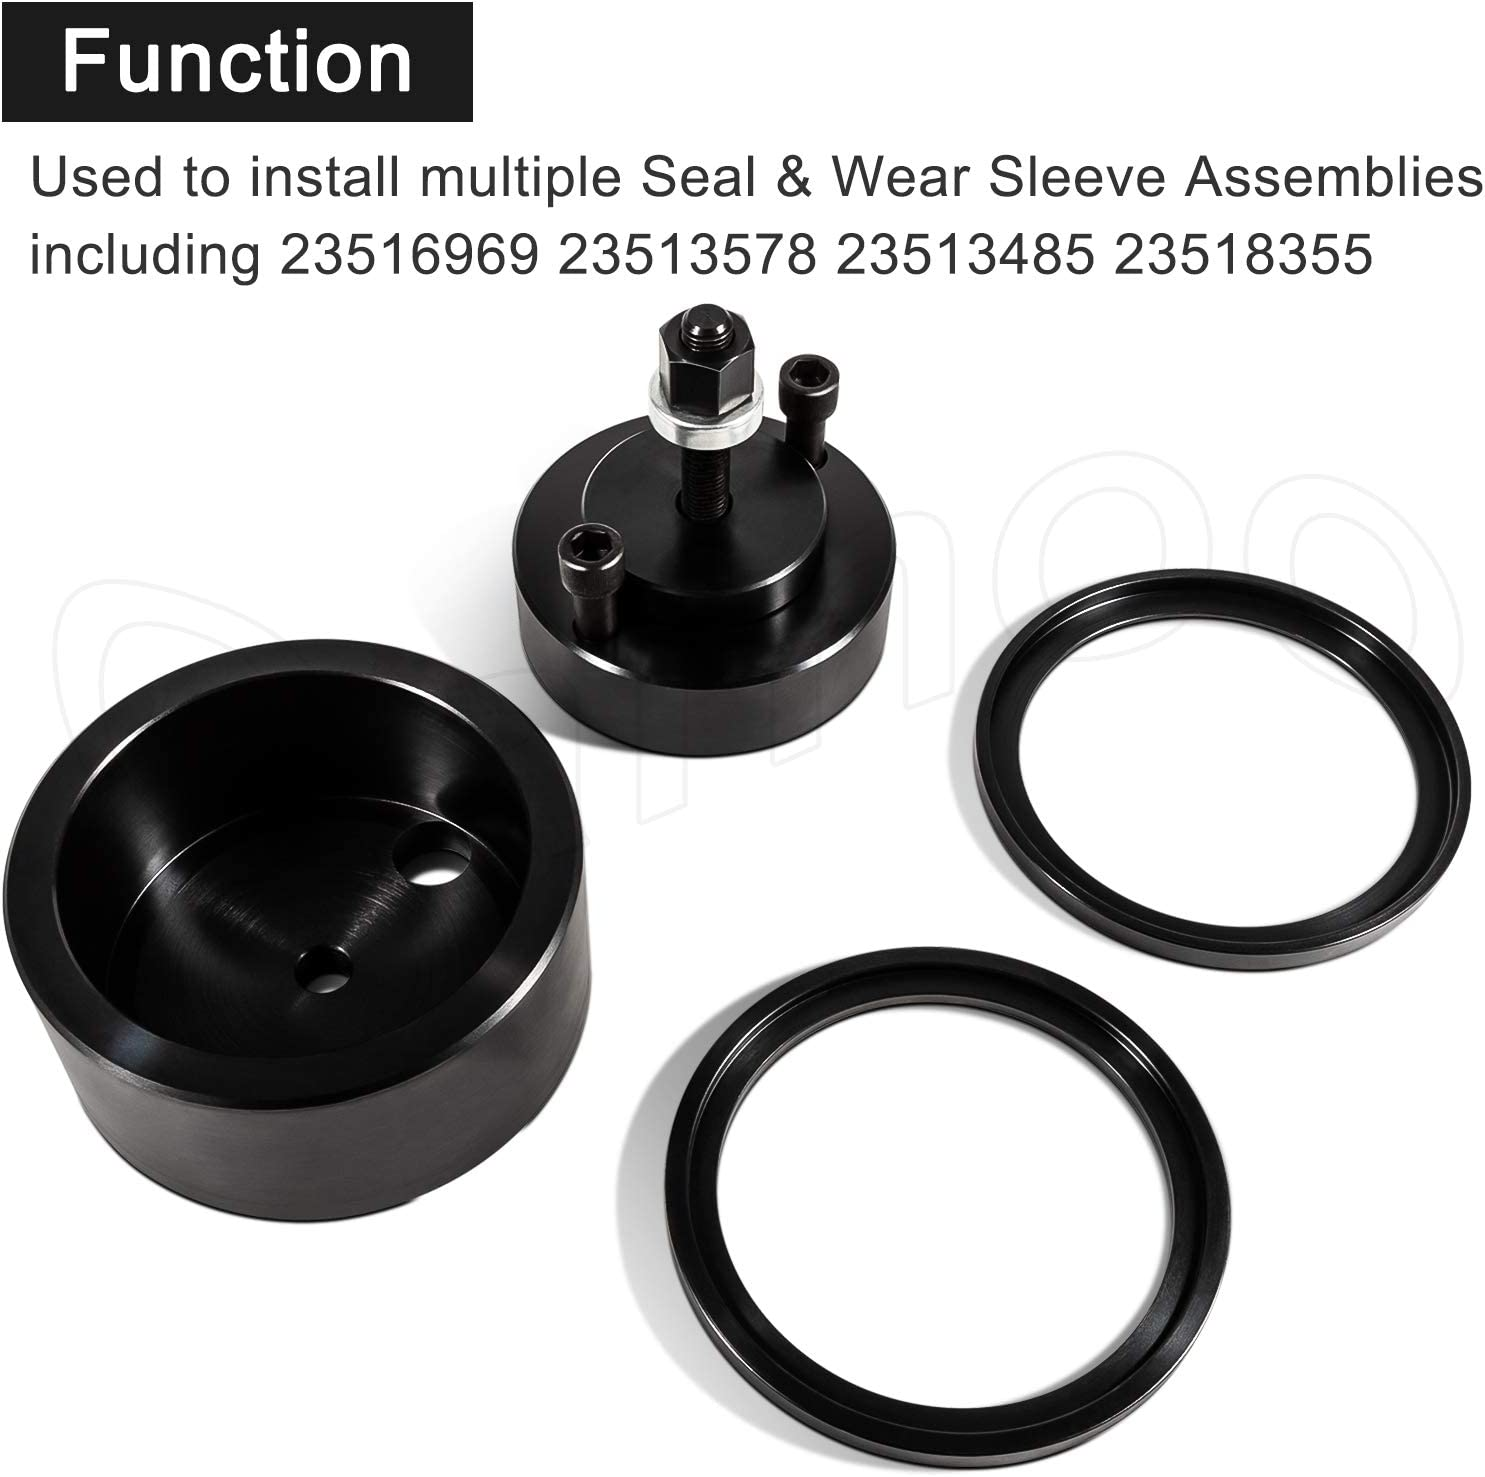 Bonbo J-35686-B Front /& Rear Crankshaft Seal and Wear Sleeve Installer for Detroit Diesel Series 60 Two Cycle 92 Engines